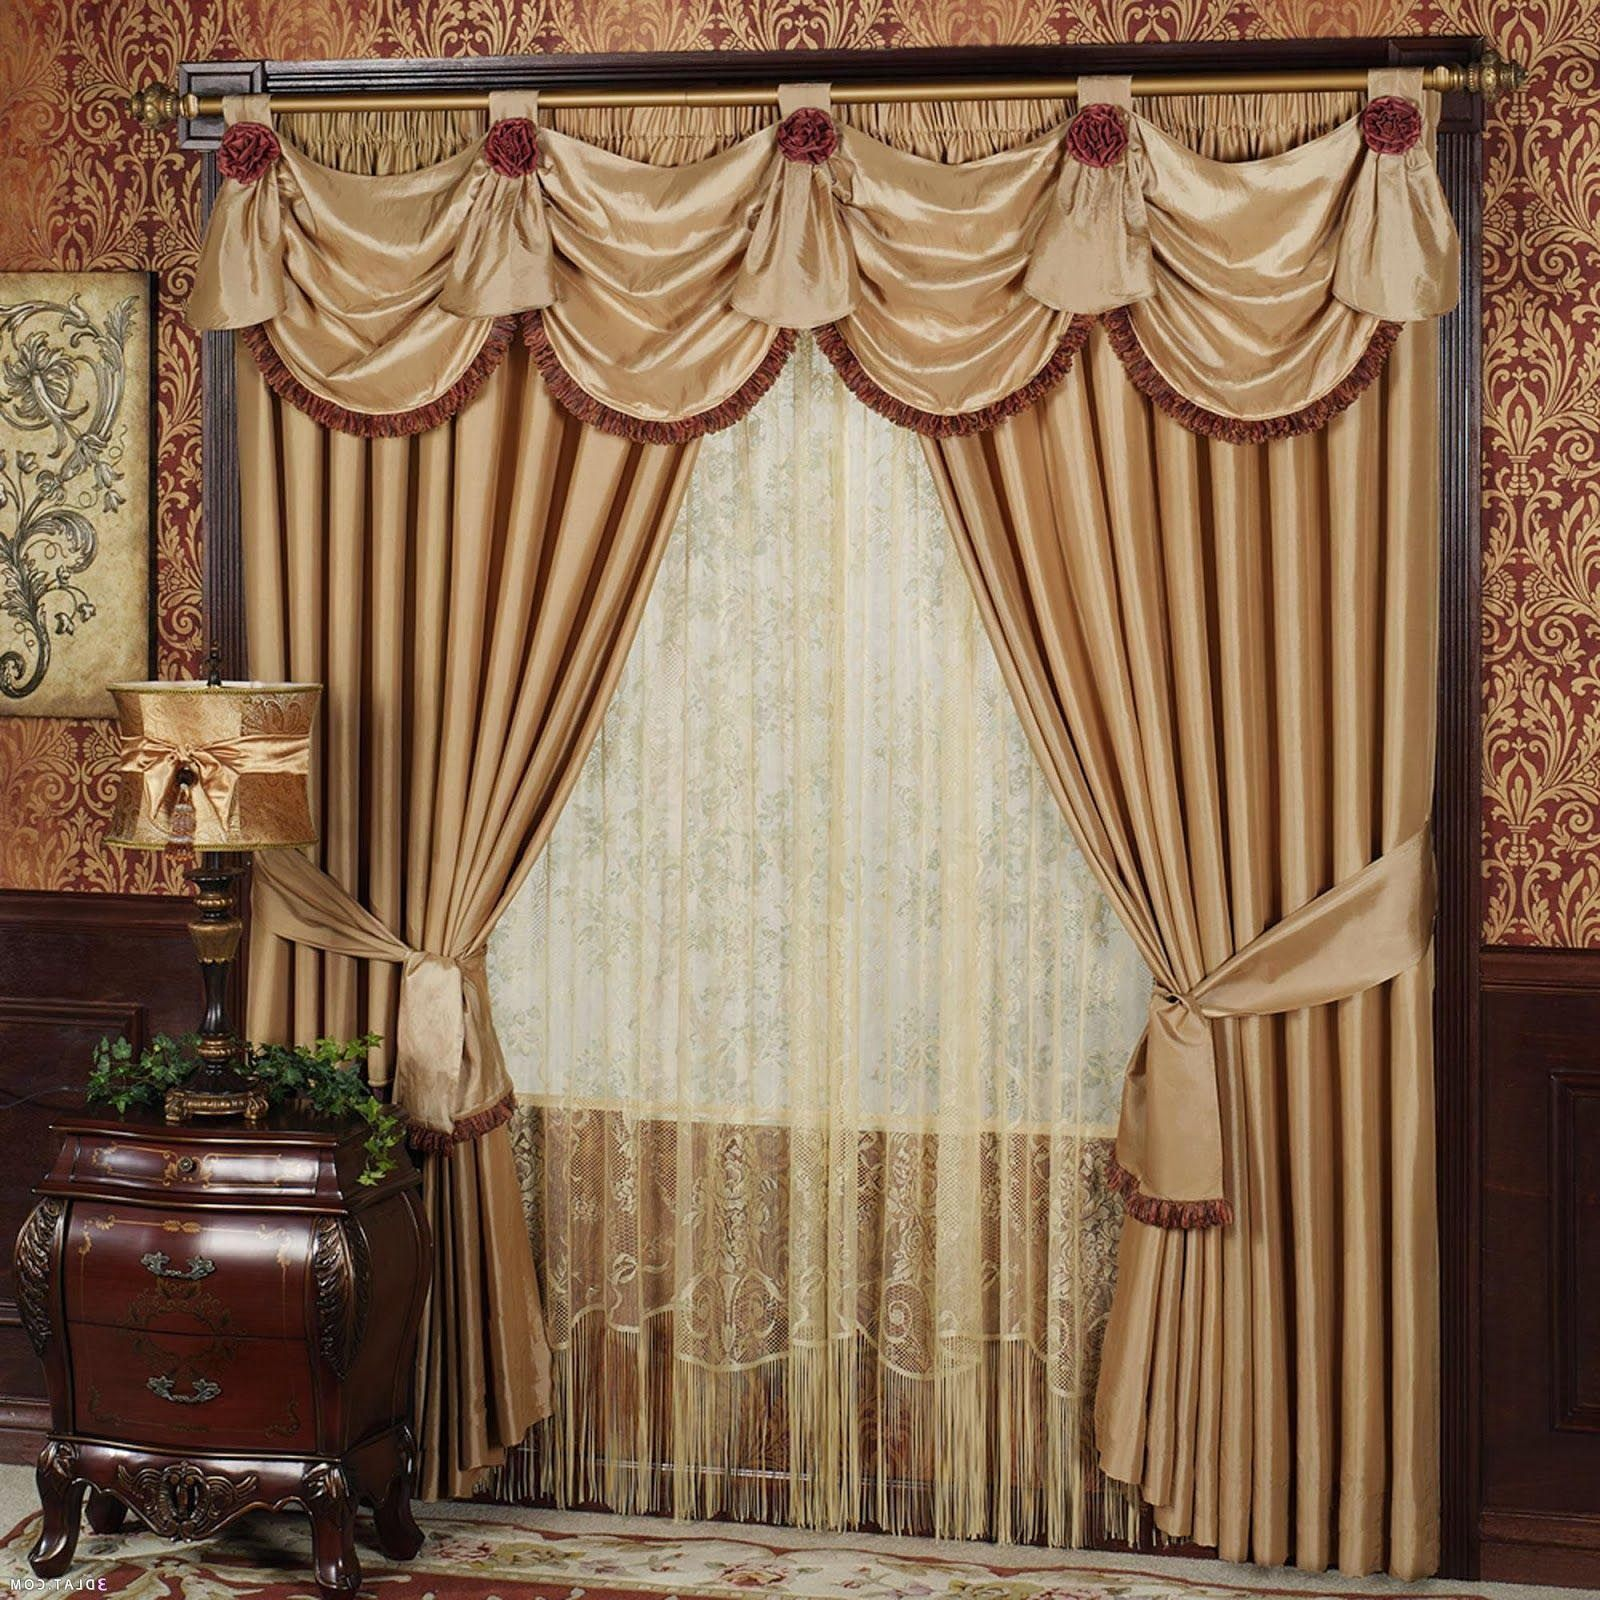 Curtains With Valance For Living Room Dark Wood Furniture Ideas Drapes Valances Curtain